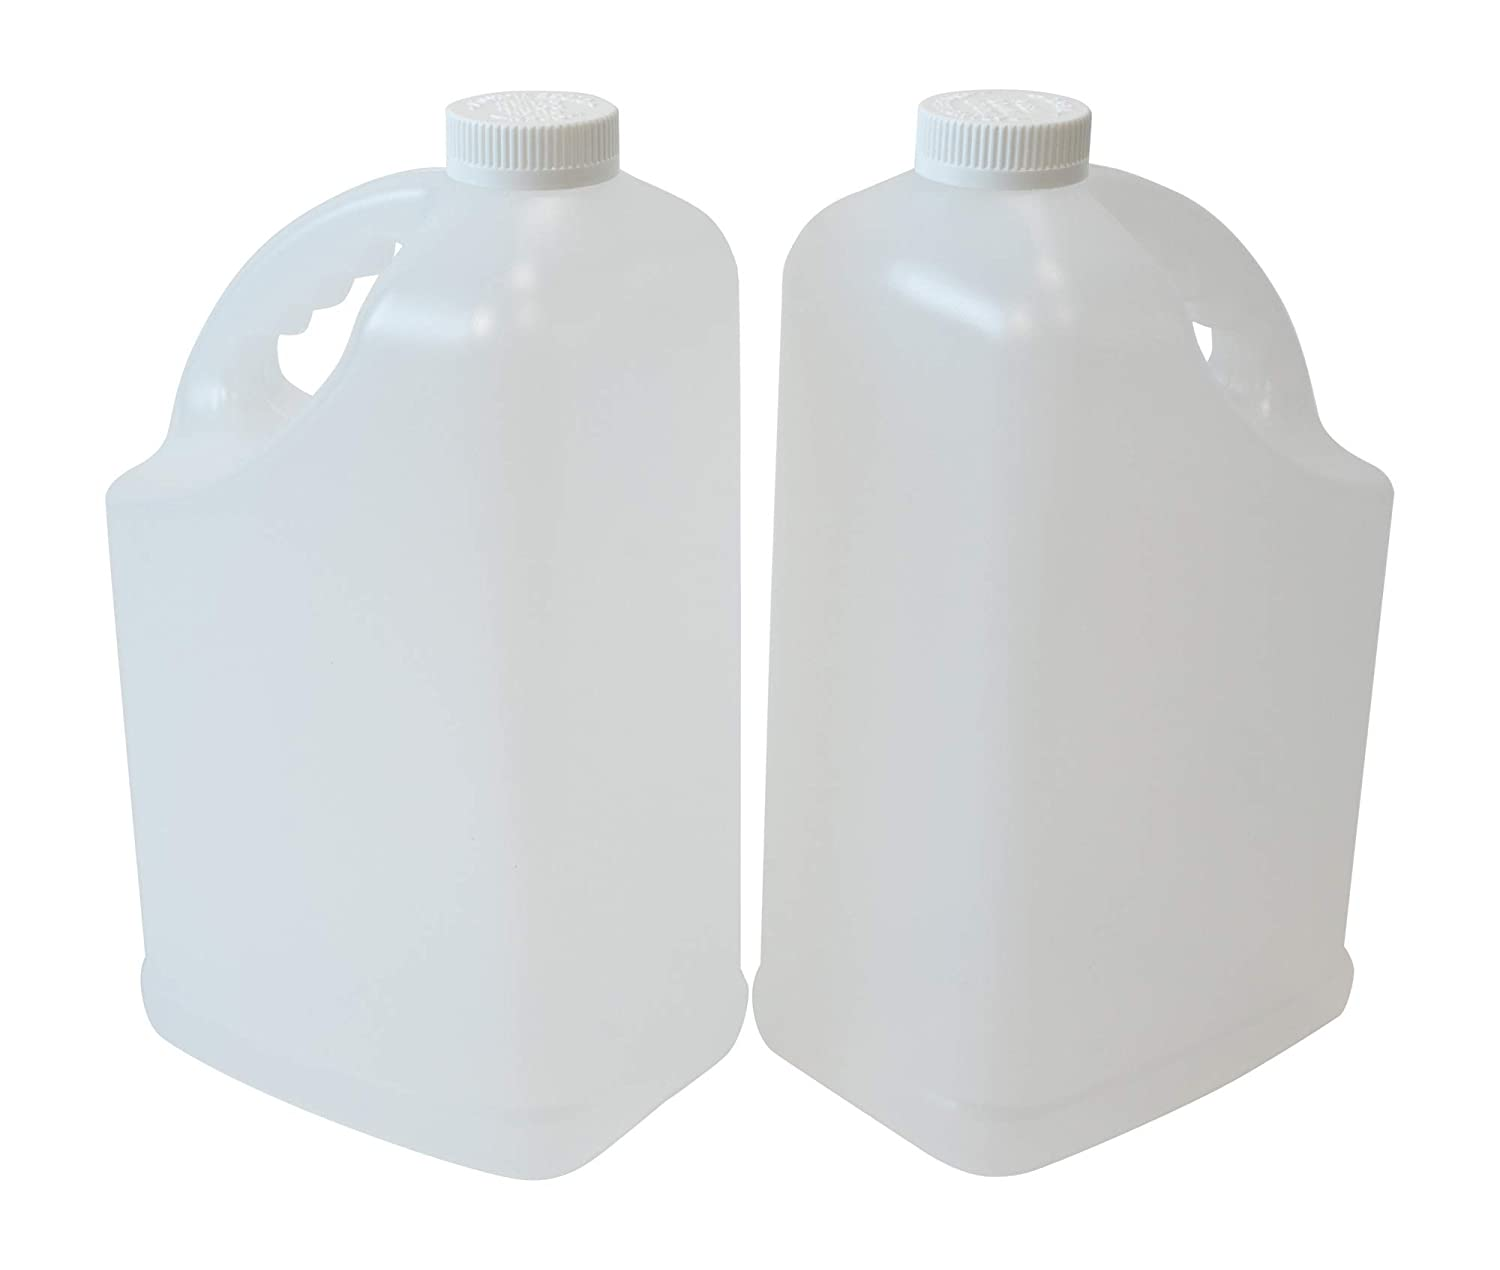 CSBD Slanted F-Style Clear Plastic Jugs with Child Resistant Lids, 2 Pack, Storage Containers with Ergonomic Handle, HDPE Construction for Residential or Commercial Use, 1 Gallon